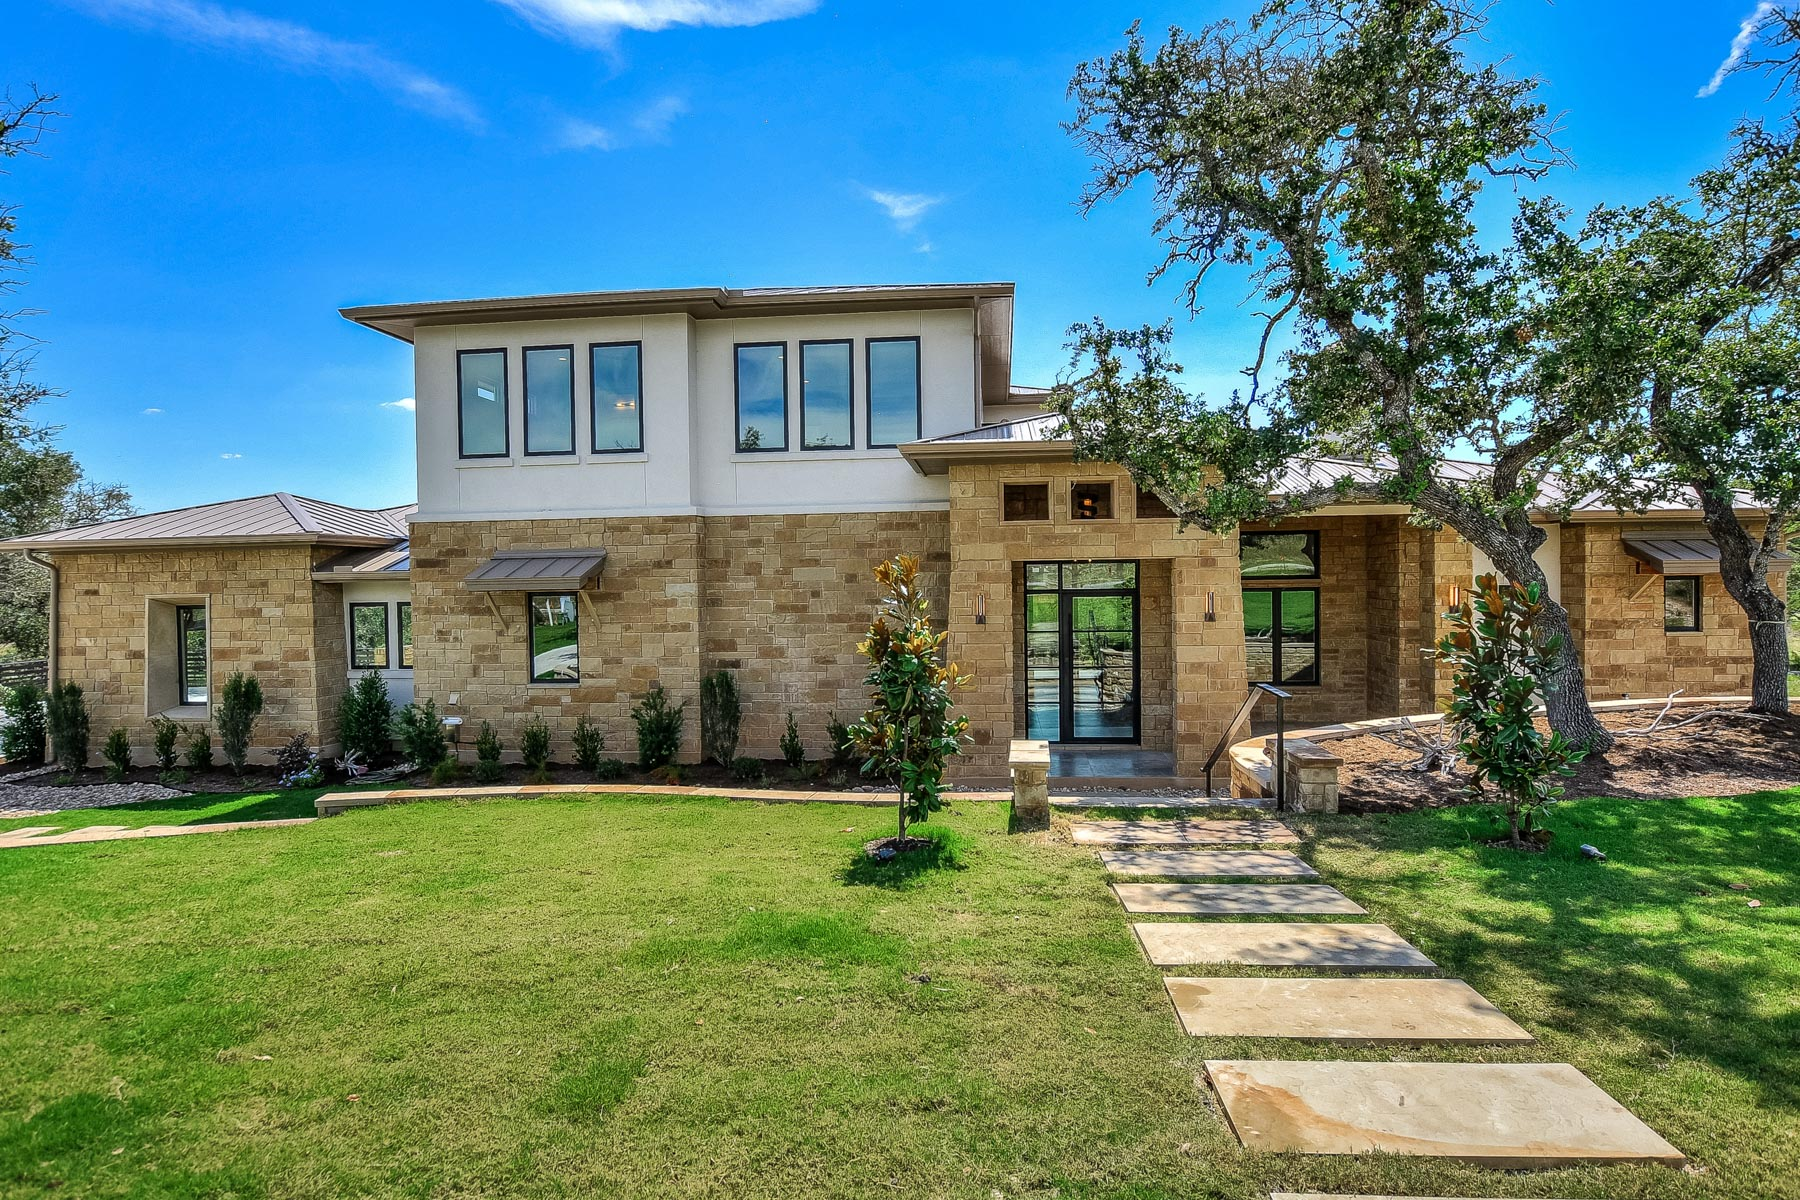 Single Family Home for Sale at New Construction in Belvedere 8600 Rollins Dr, Austin, Texas, 78738 United States